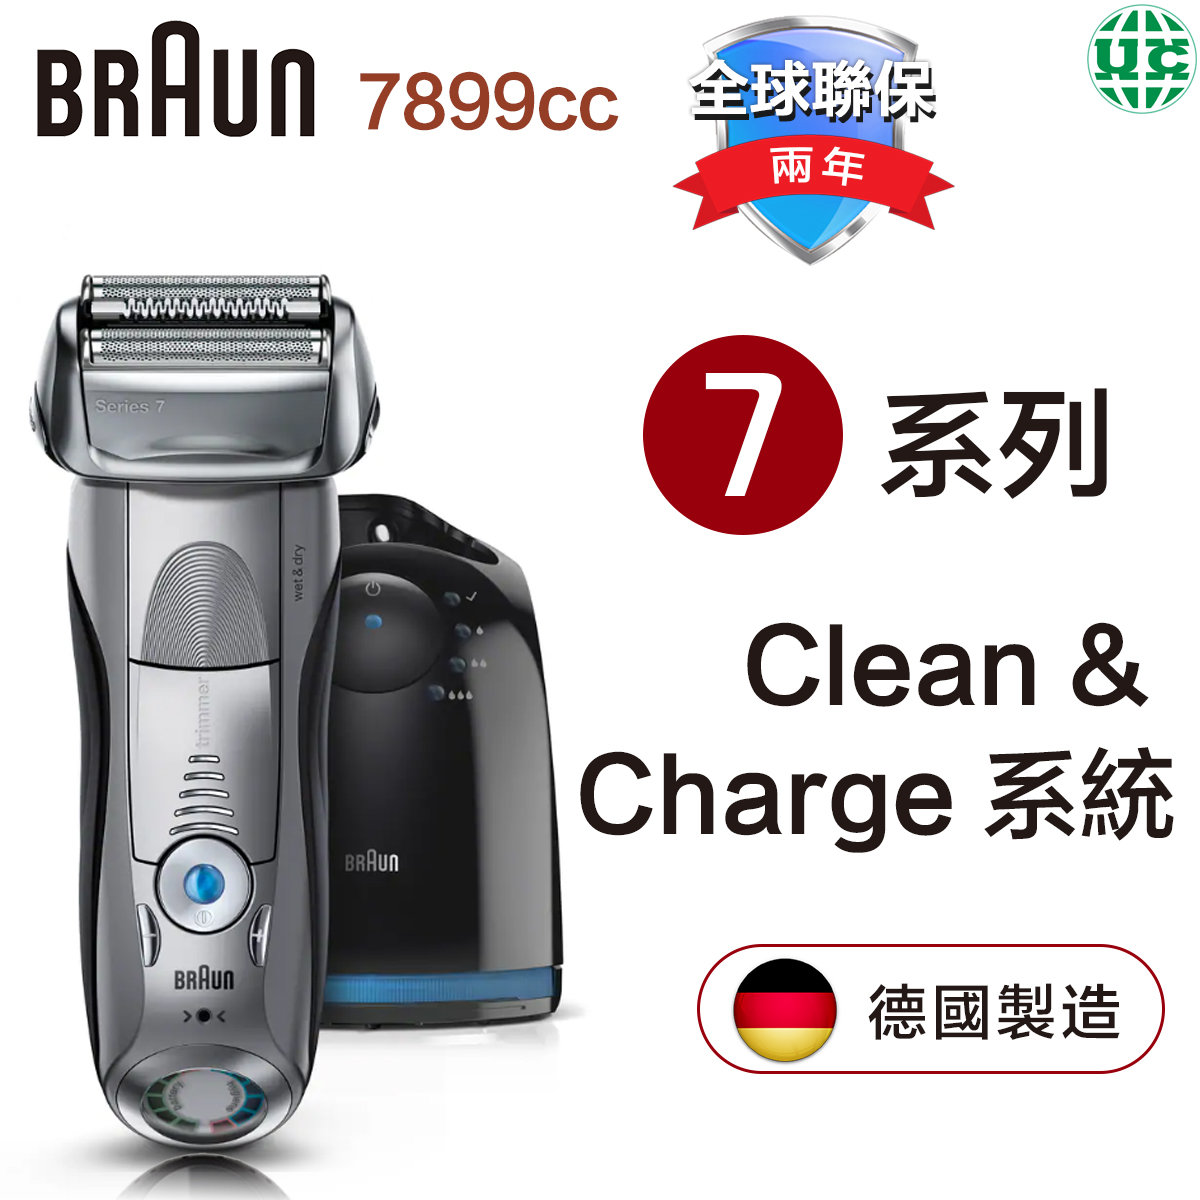 Series 7 7899cc Men's Electric Shaver Dry and Wet (Parallel Import)